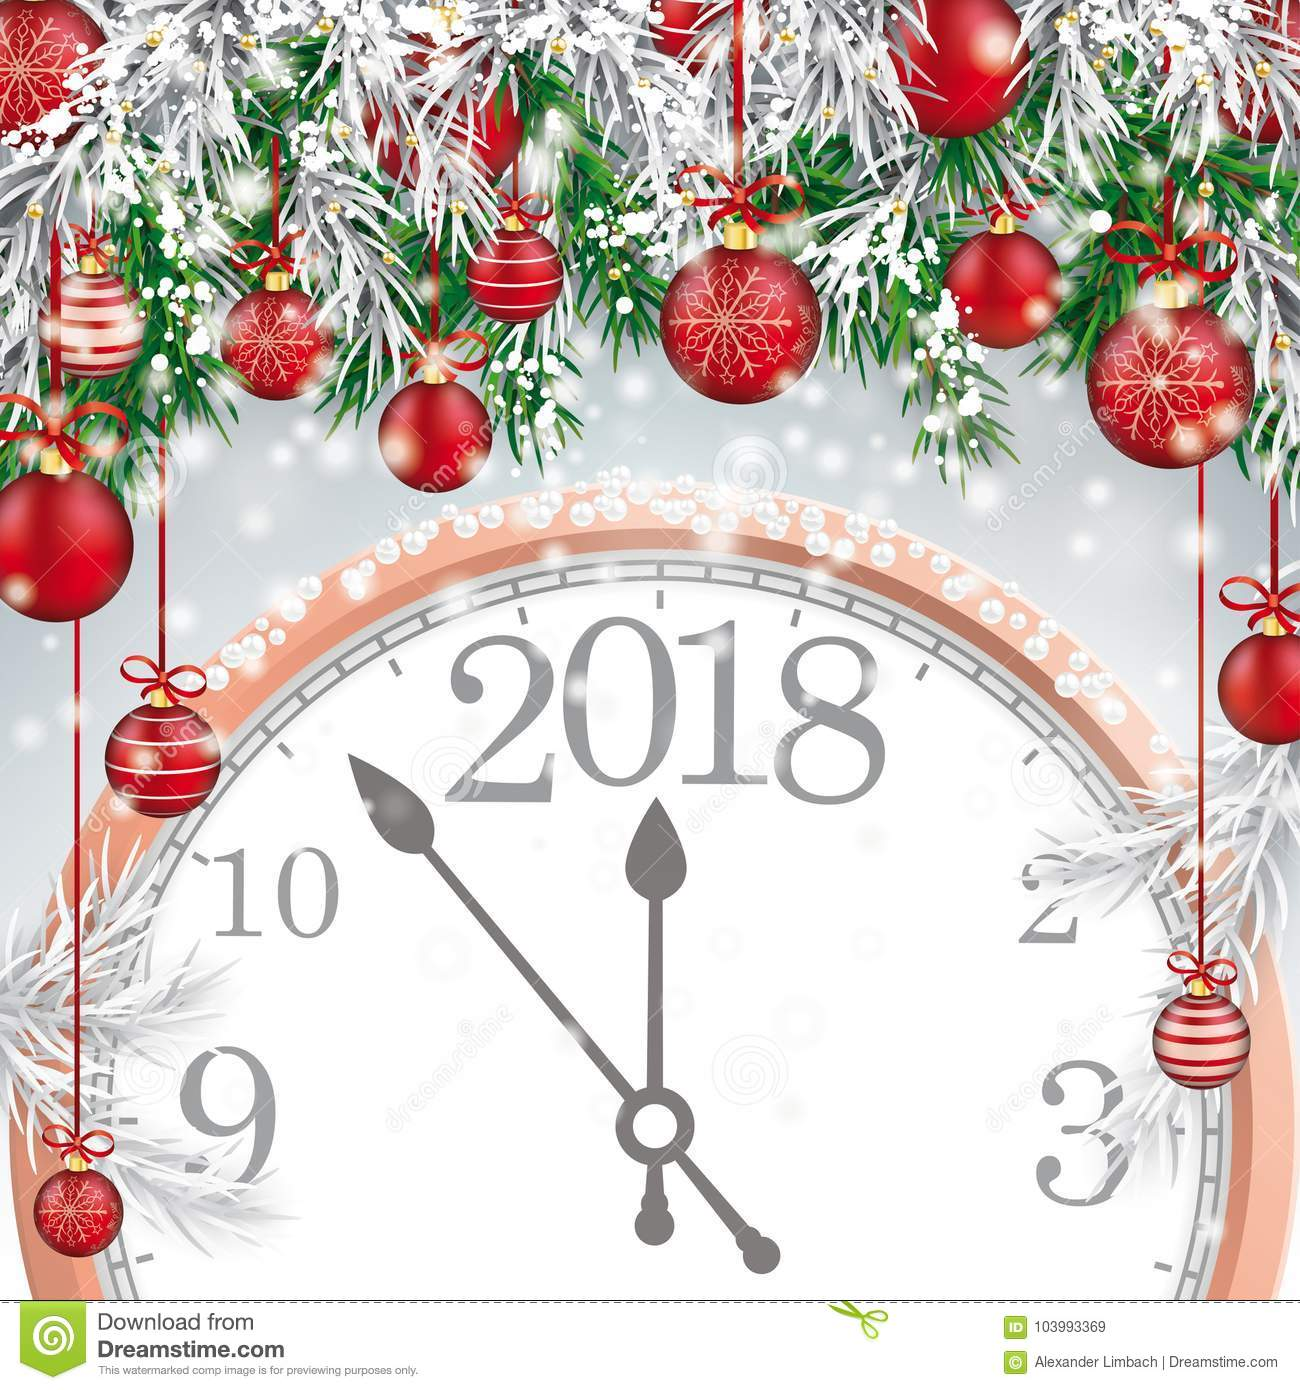 Merry Christmas Frozen Green Twigs Red Baubles Clock 2018 Stock ...